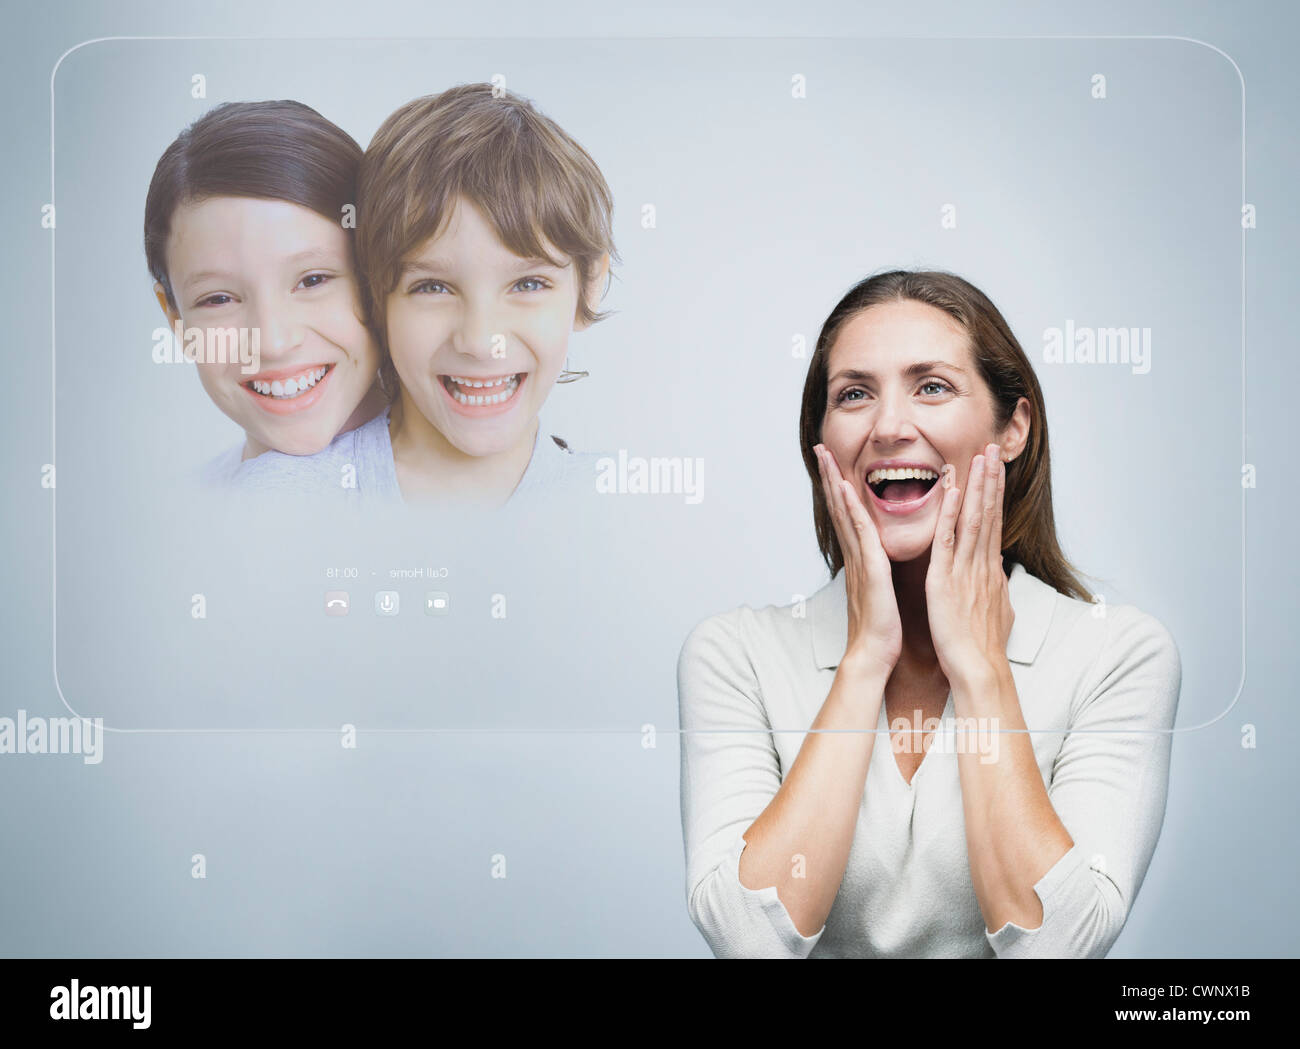 Woman doing video conference with children using advanced touch screen technology - Stock Image